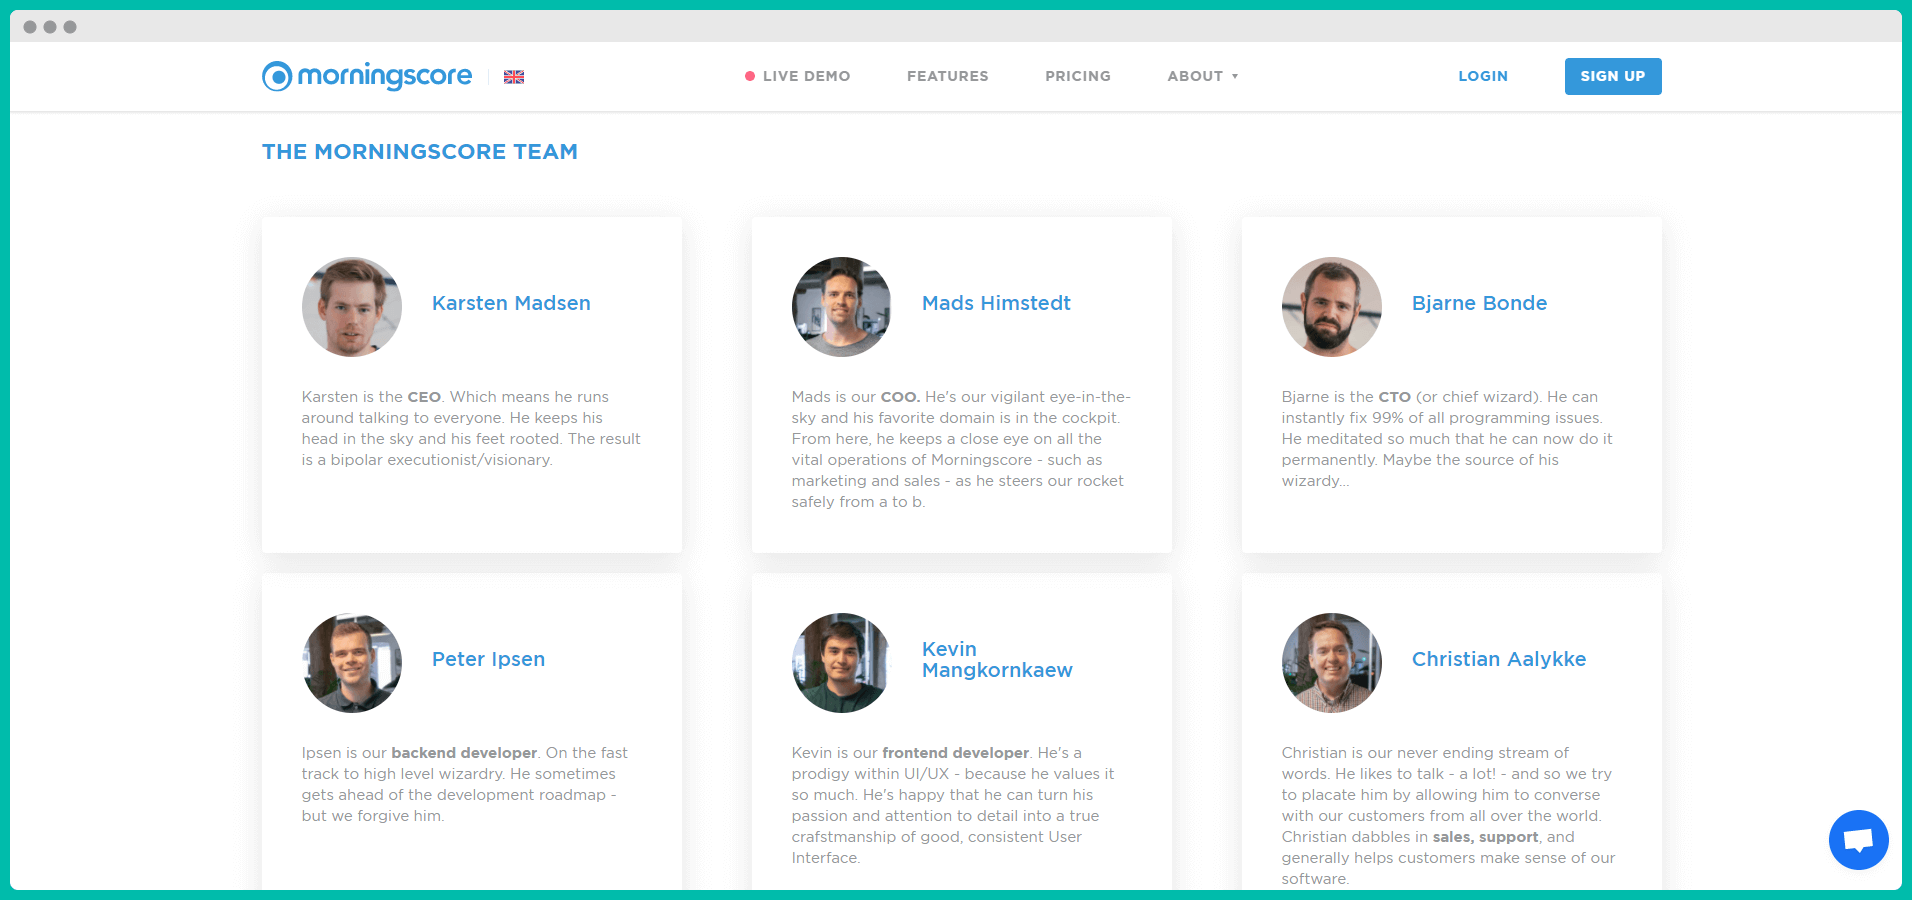 Presenting your employees on the About page